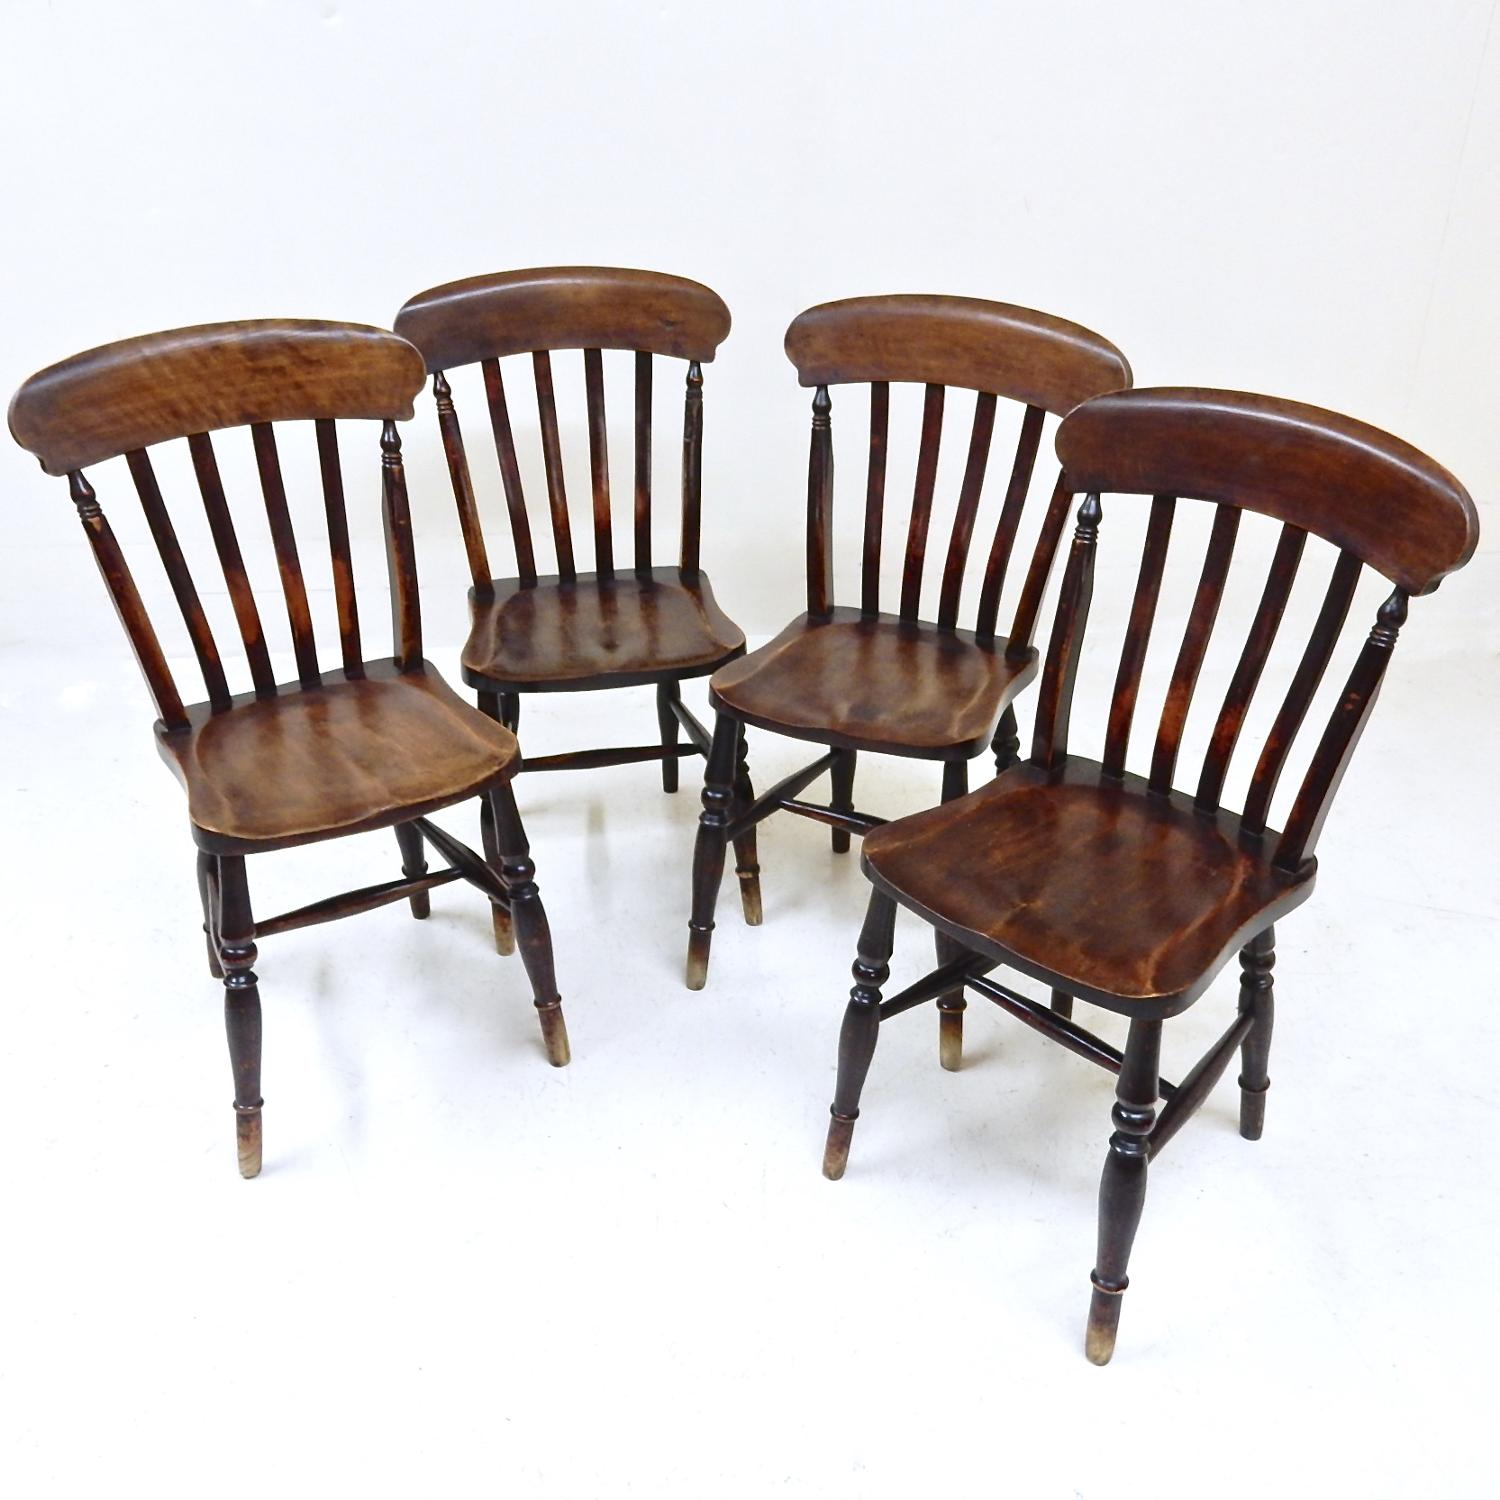 Windsor Kitchen Chairs: Antique Windsor Kitchen Chairs In Tables And Chairs